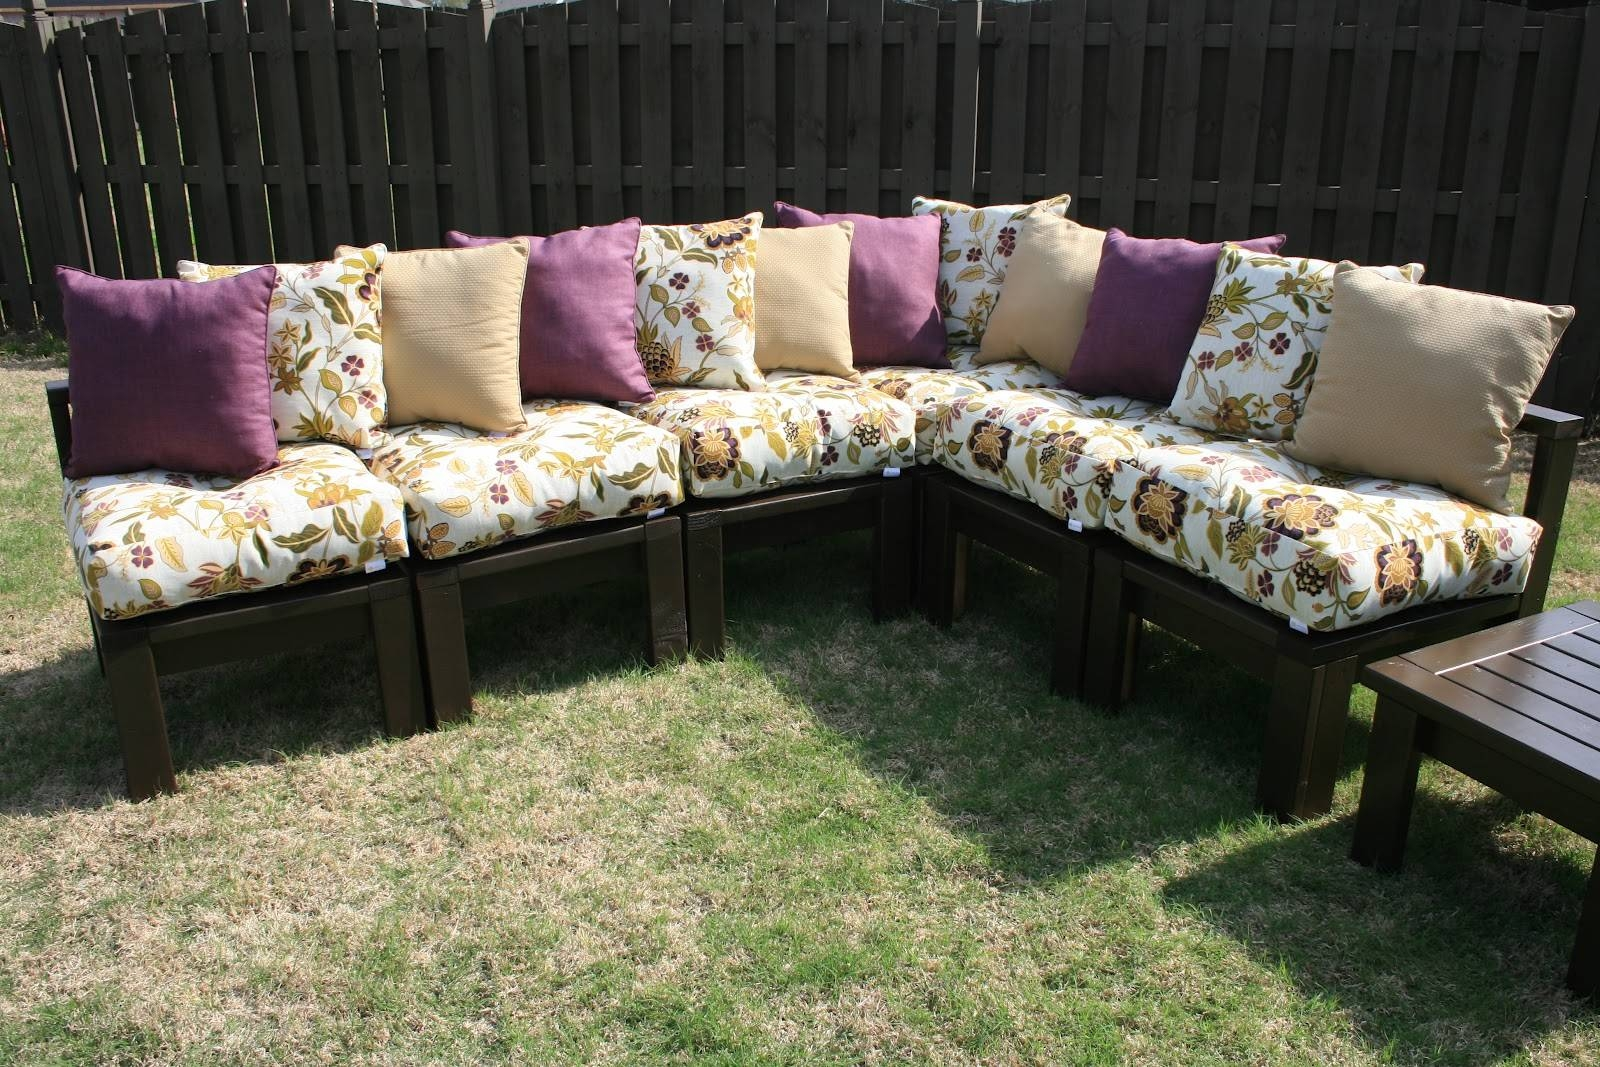 Diy Outdoor Sectional - The 36Th Avenue with Building A Sectional Sofa (Image 14 of 30)